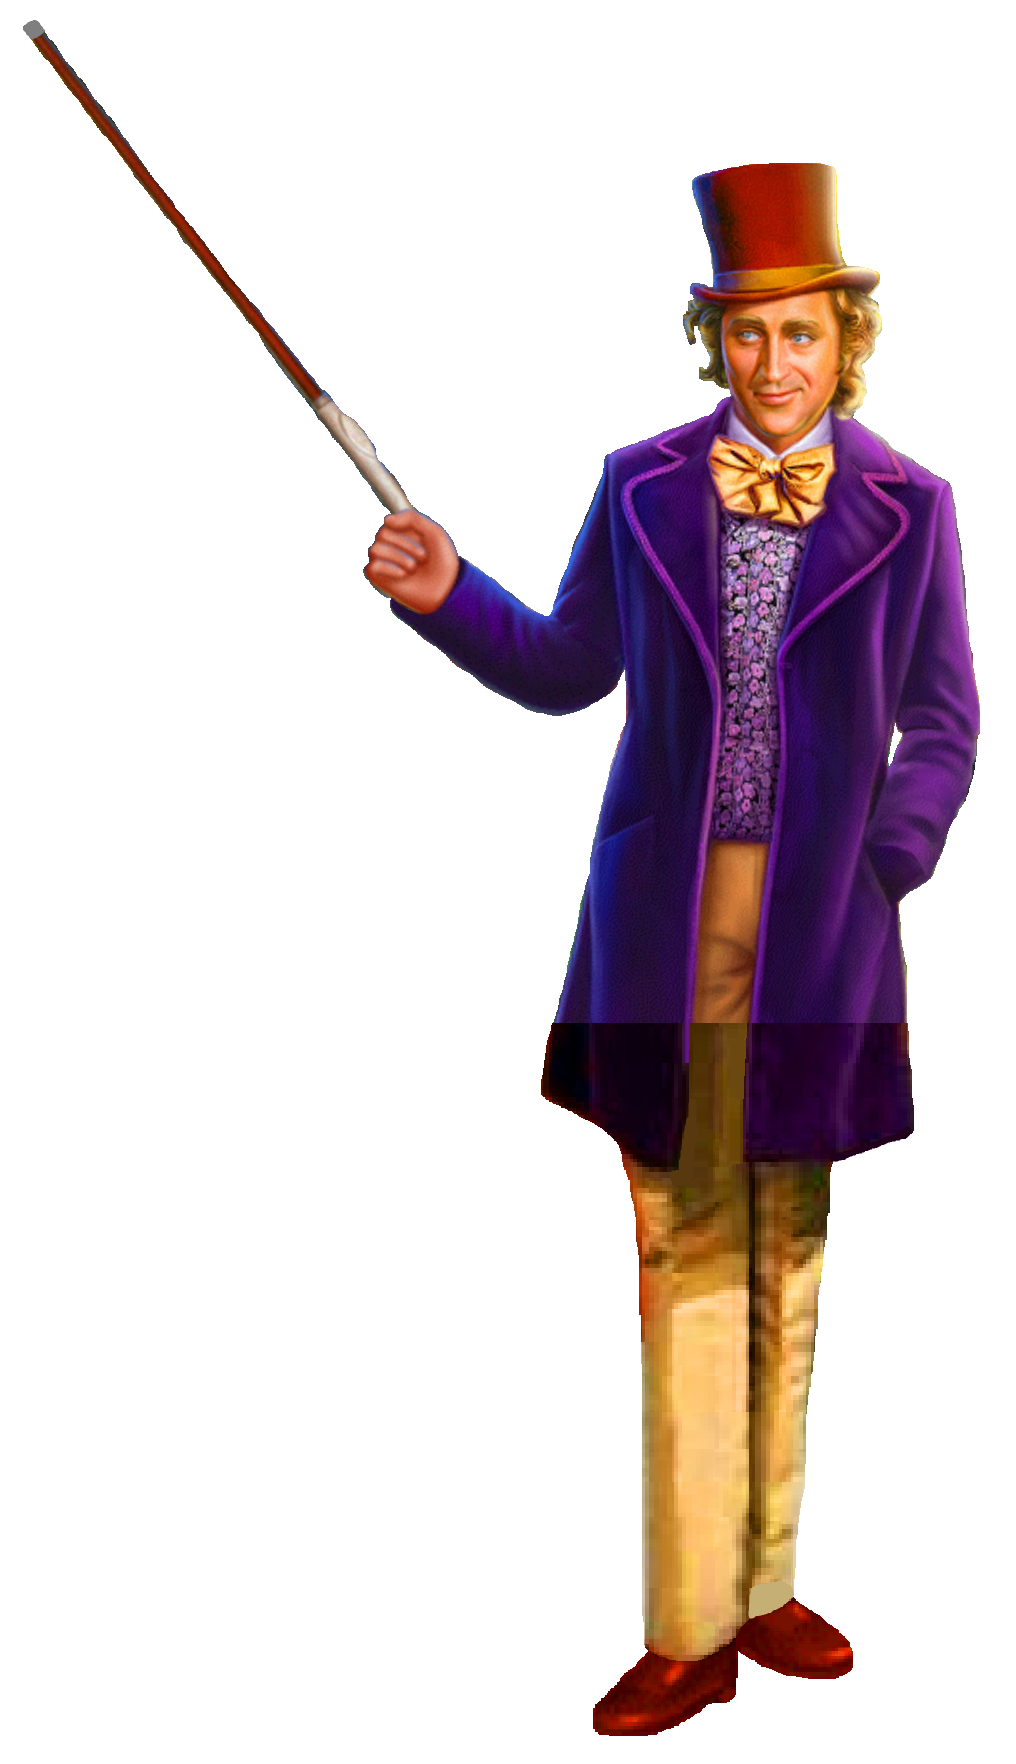 Willy Wonka Png (107+ images in Collection) Page 1.